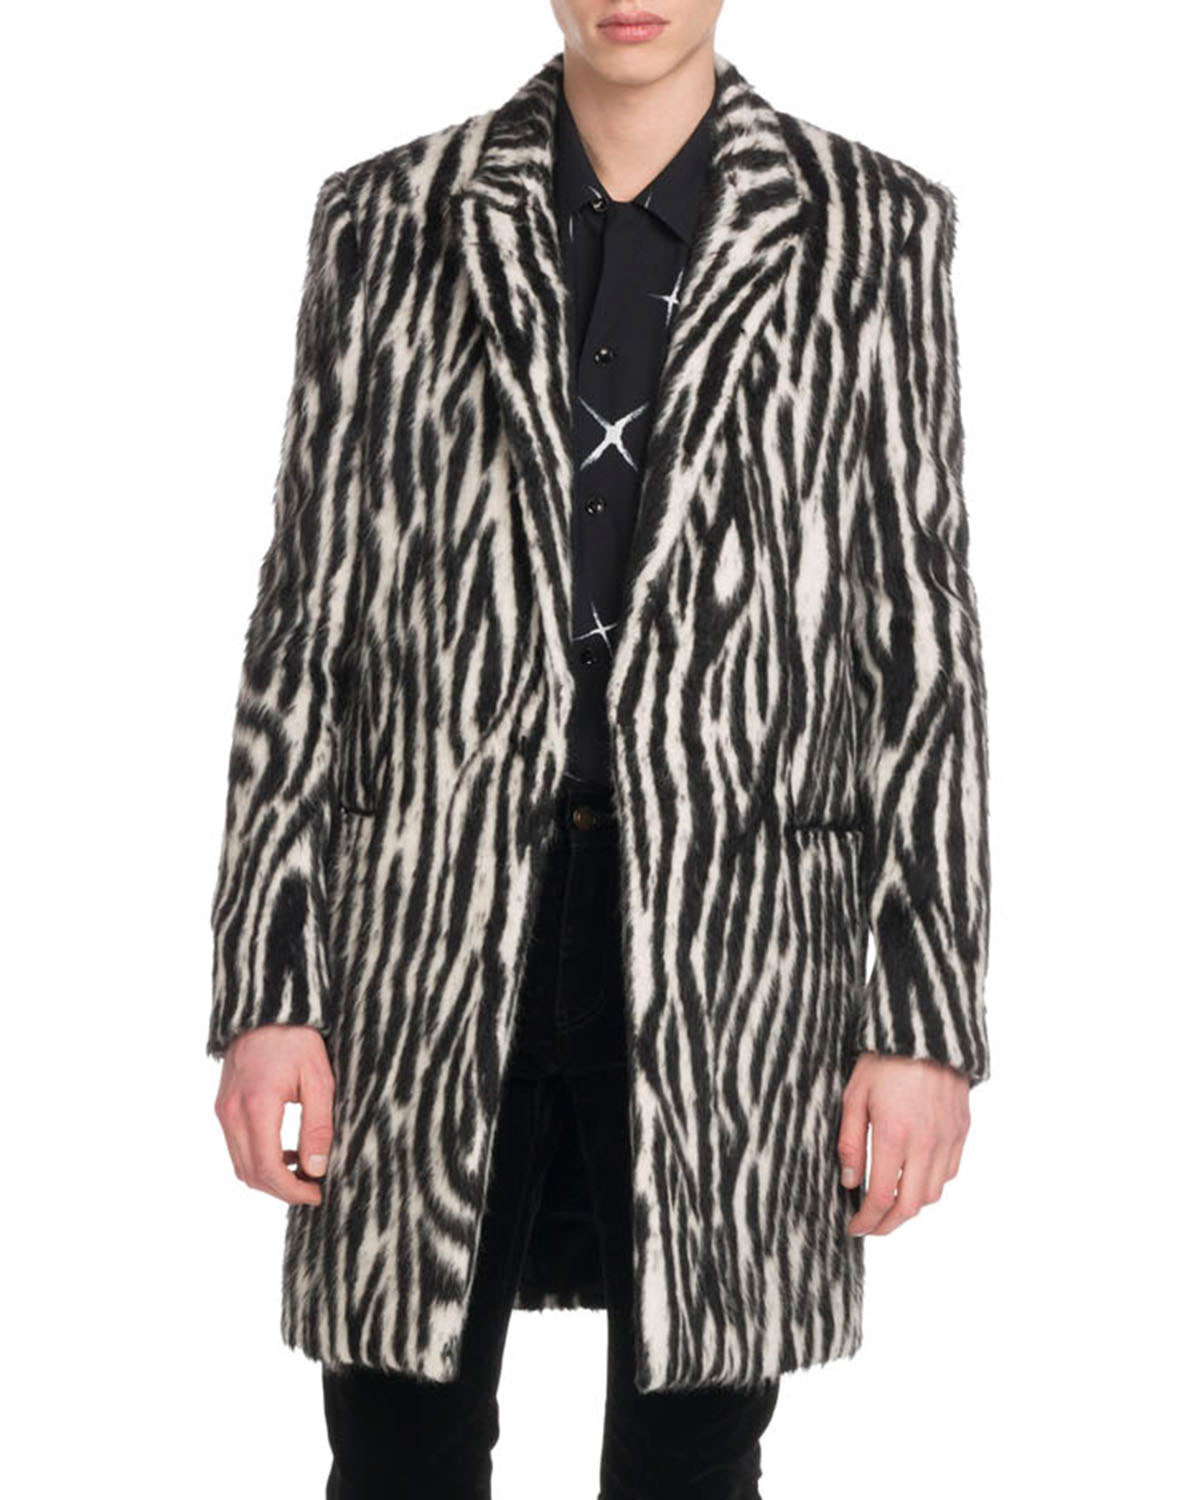 da0564839b Saint Laurent Men s Zebra-Stripe Fleece Coat